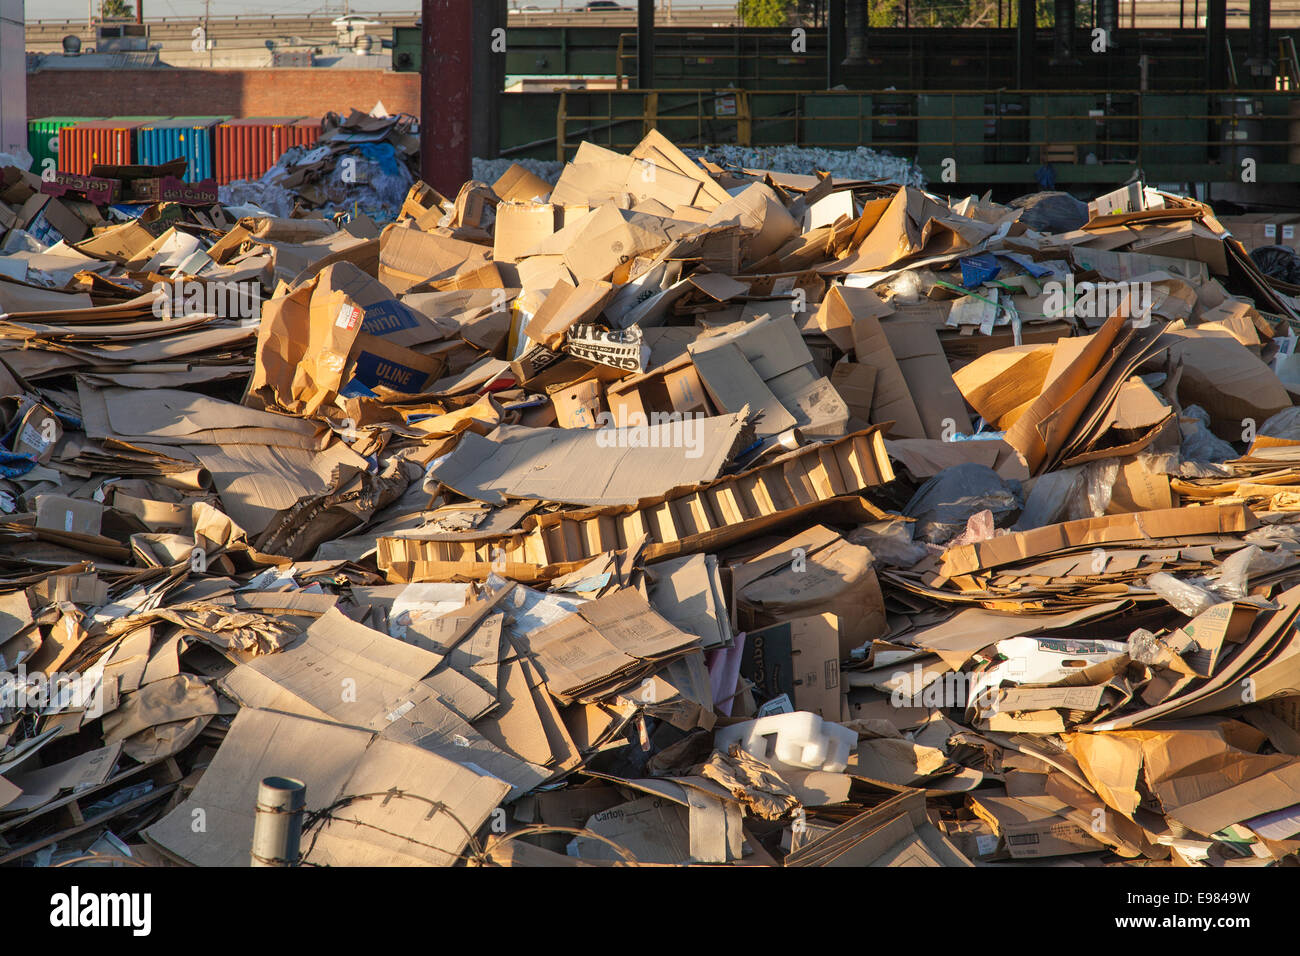 Kartons an der Recycling-Station, Downtown Los Angeles, Kalifornien, USA Stockbild